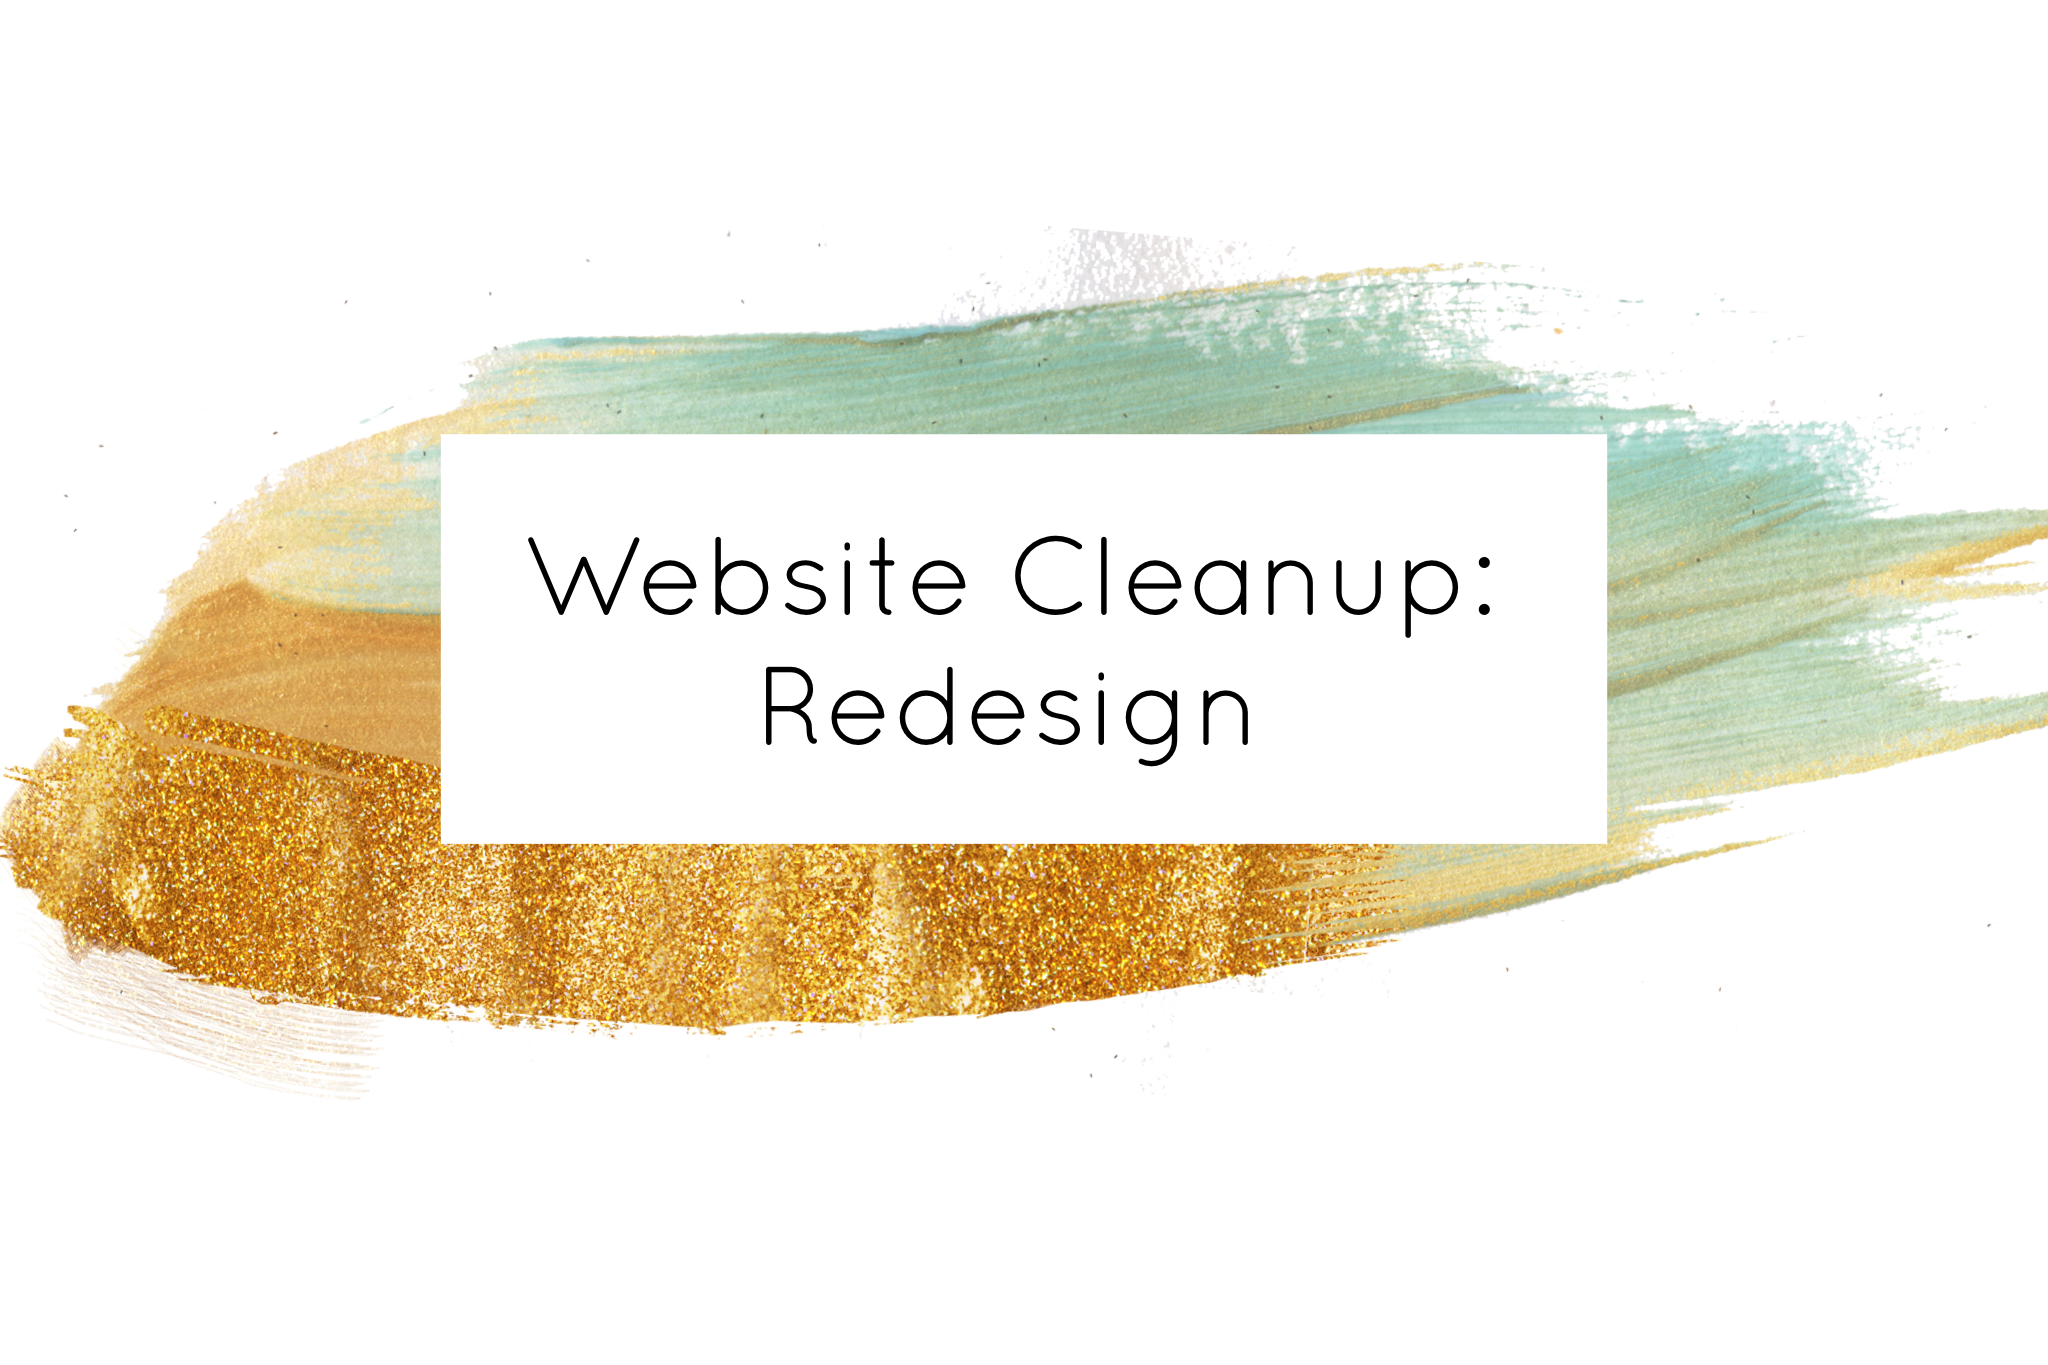 Website Cleanup Redesign